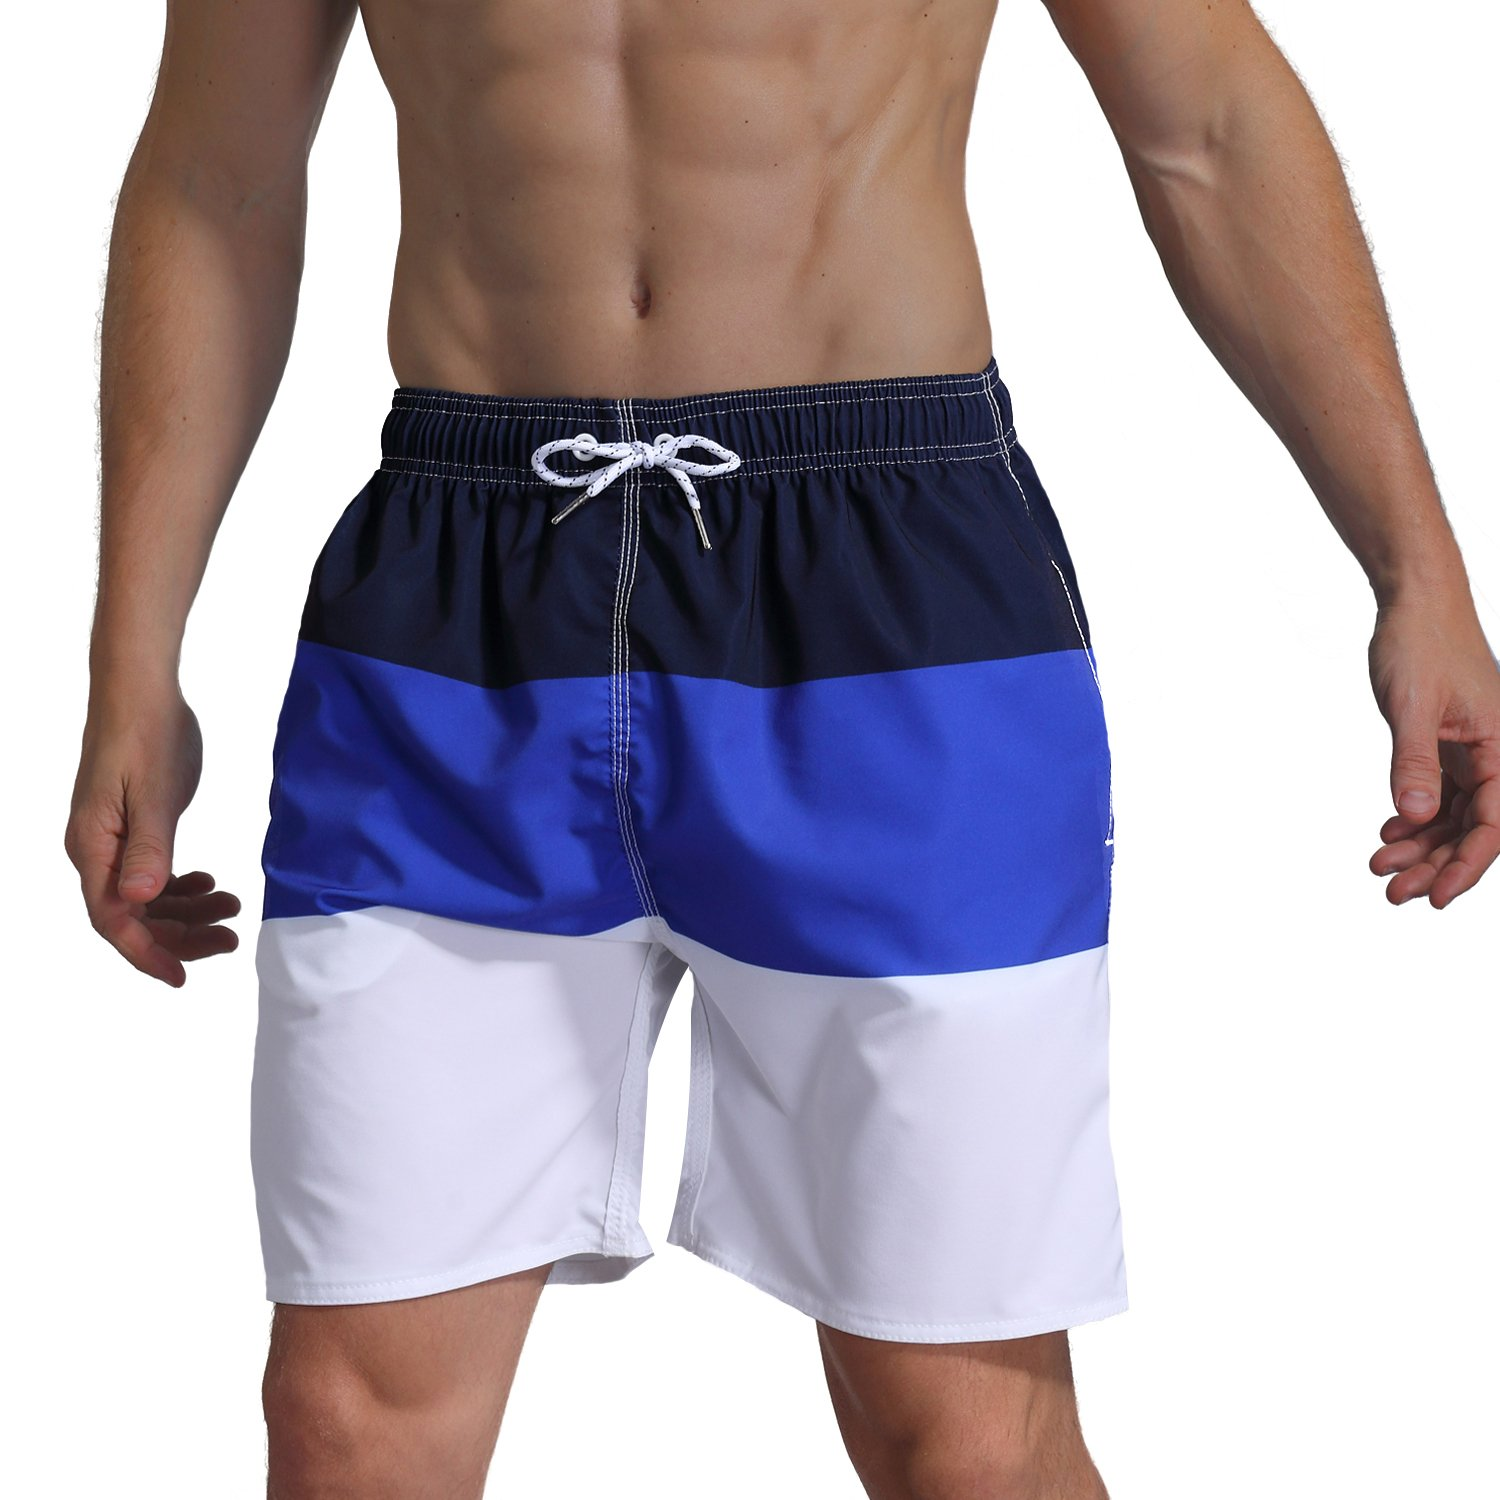 Milankerr Men's Swim Trunk Beach Shorts (L(Waistline:36''-38''), NavyBlue) by Milankerr